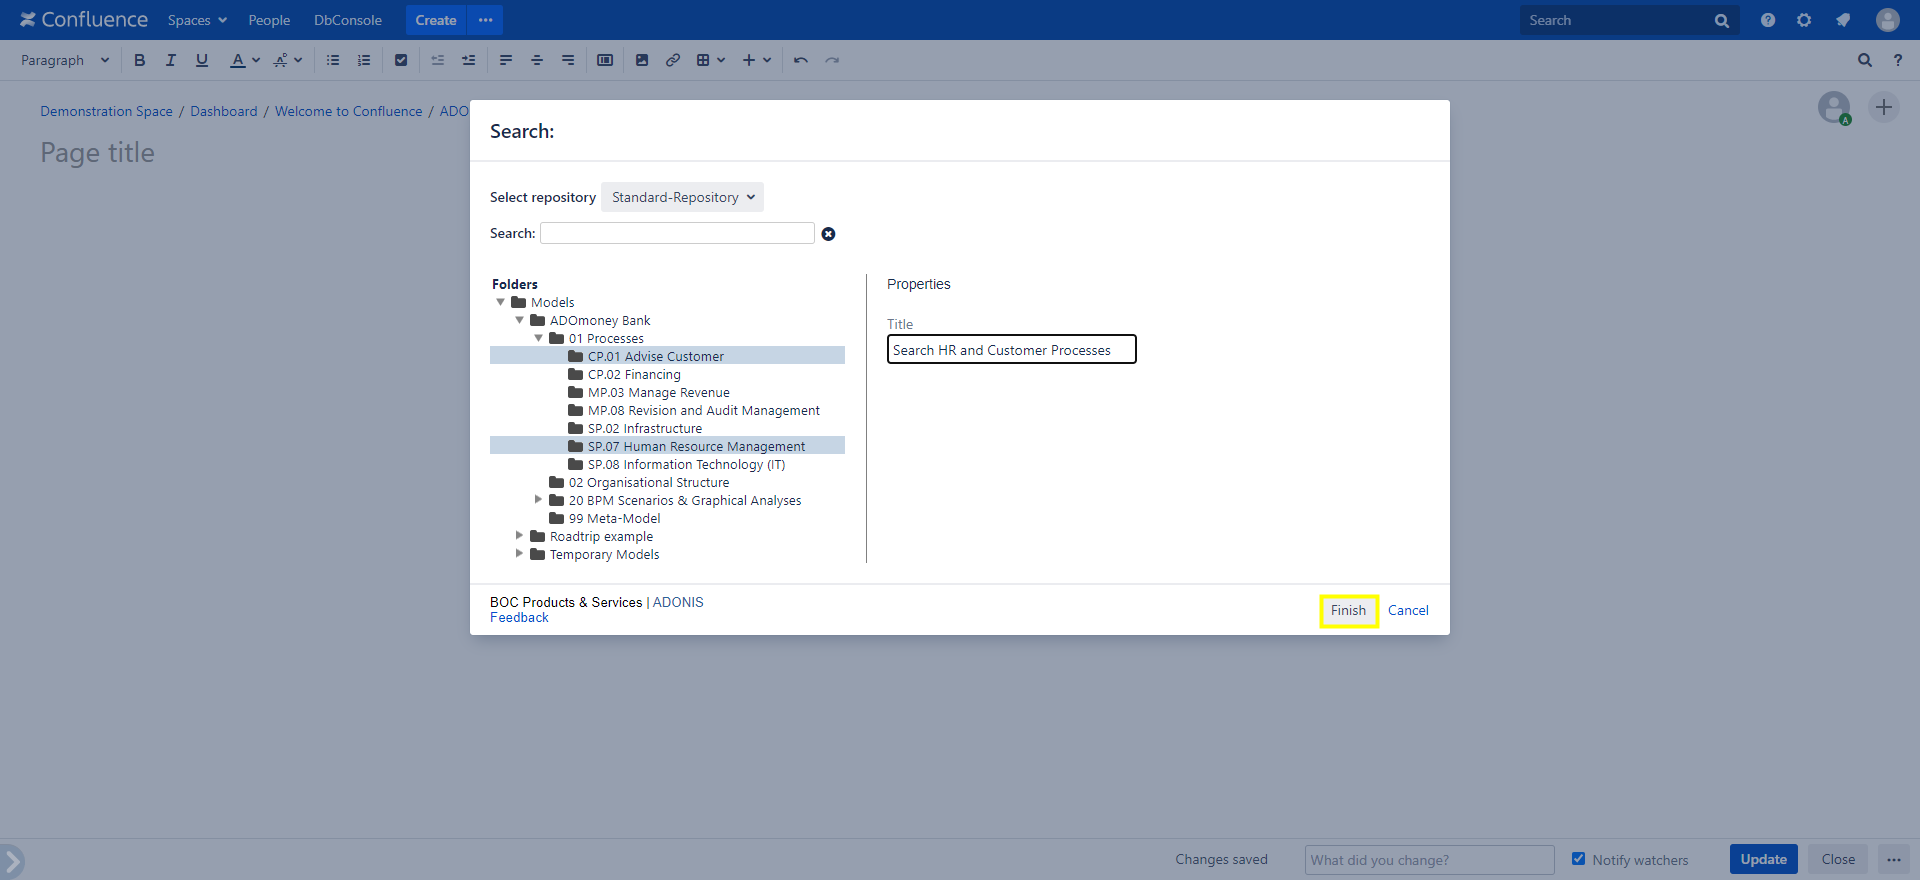 ADONIS Model Search macro configuration